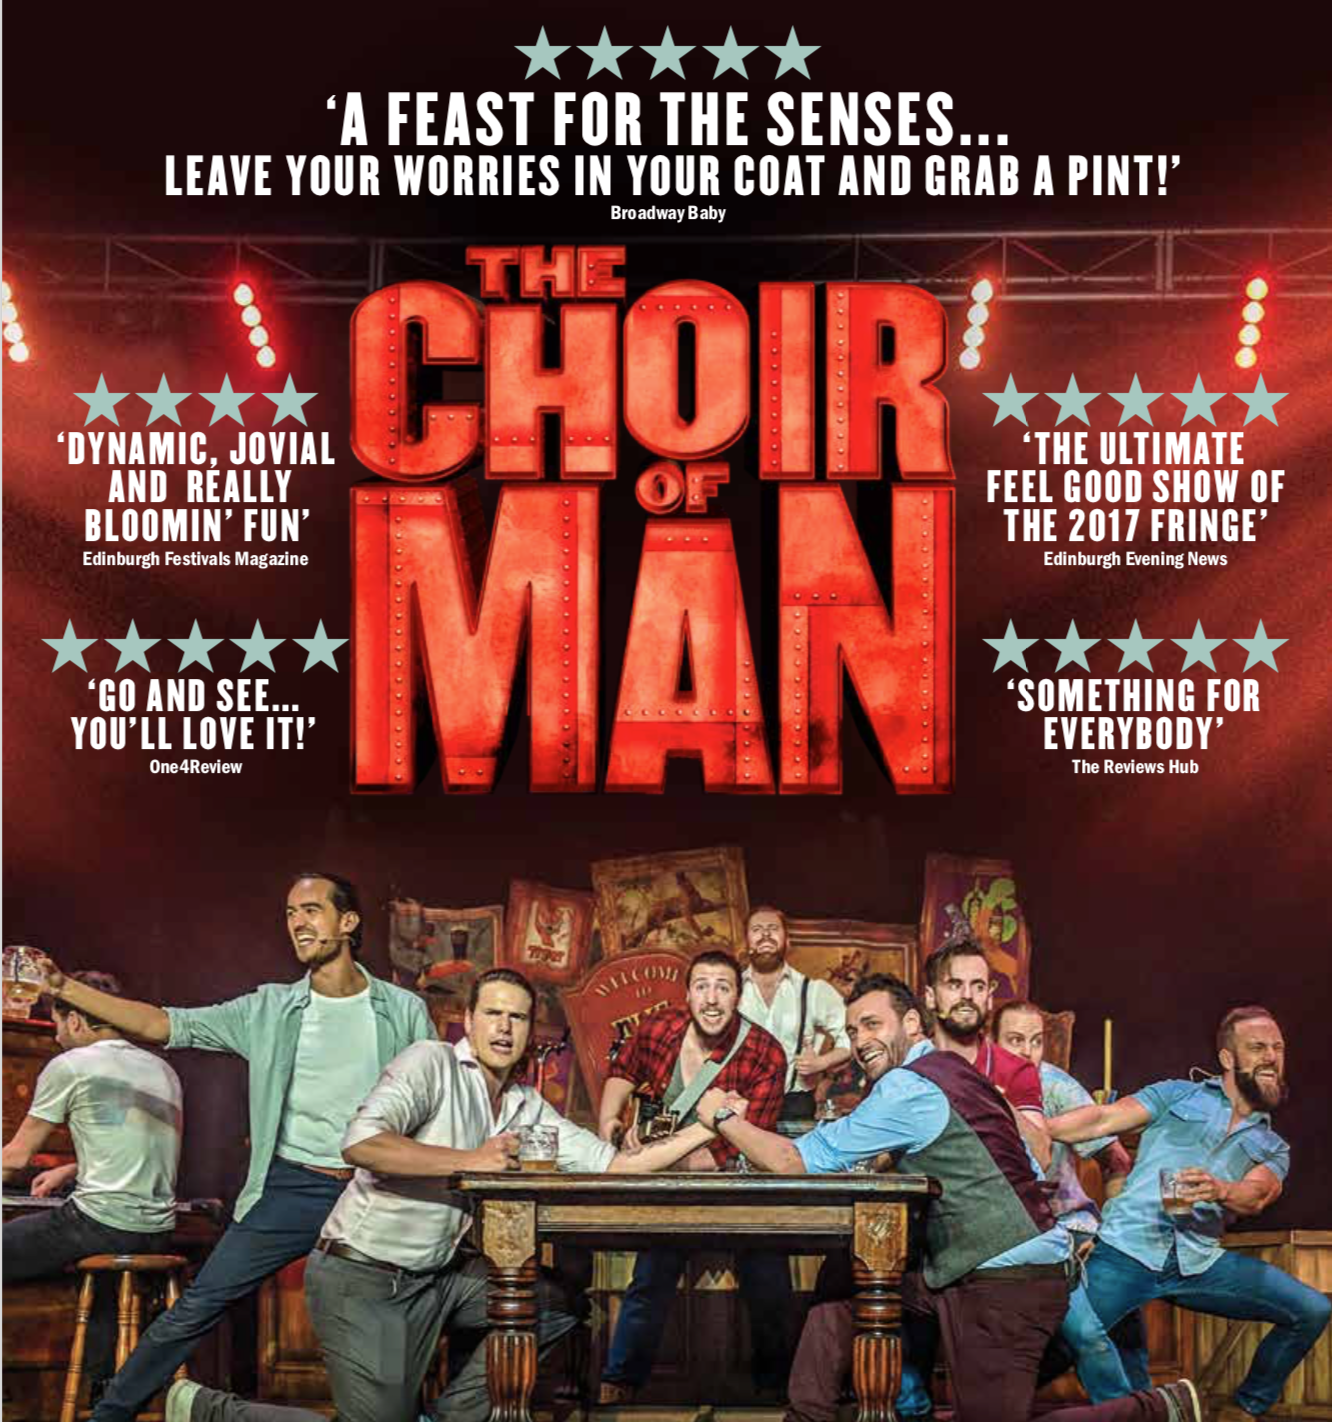 Choir of man comes to huntsville